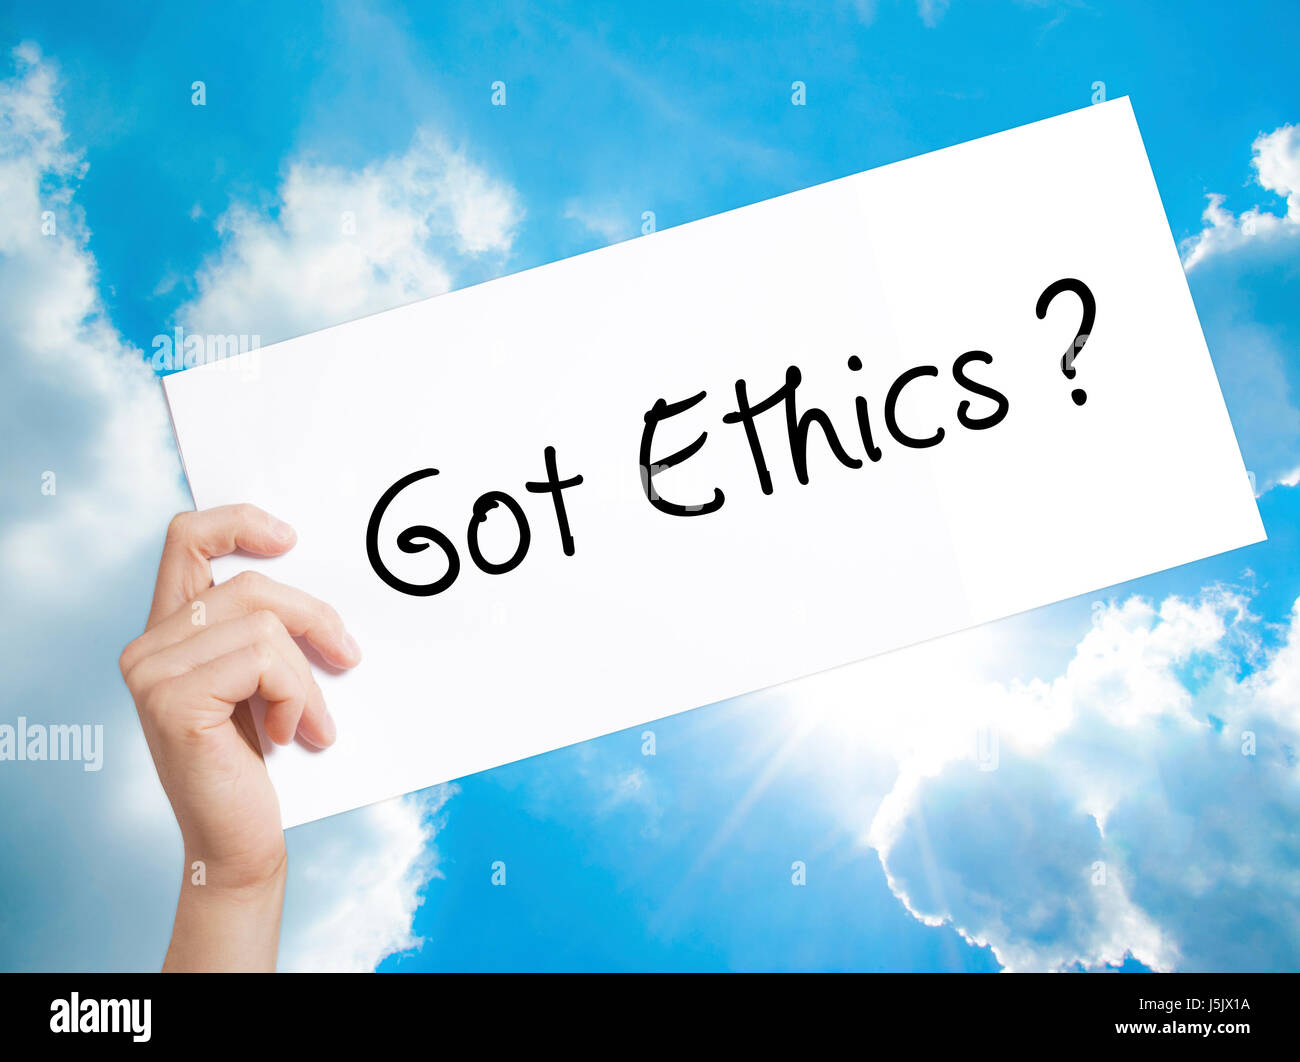 Got Ethics Sign on white paper. Man Hand Holding Paper with text. Isolated on sky background.  Business concept. - Stock Image